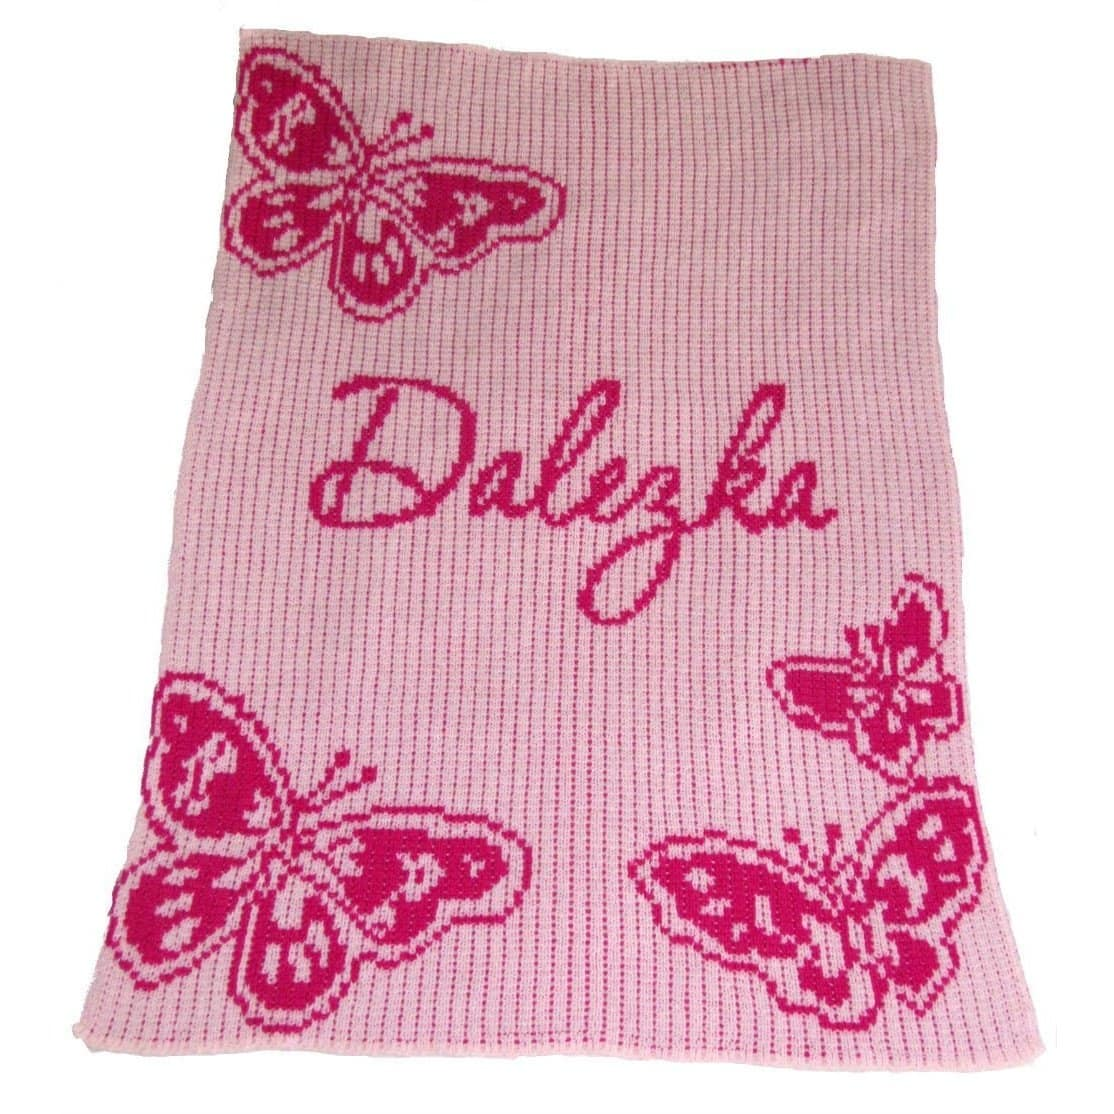 Butterfly Personalized Stroller Blanket or Baby Blanket-Blankets-Jack and Jill Boutique